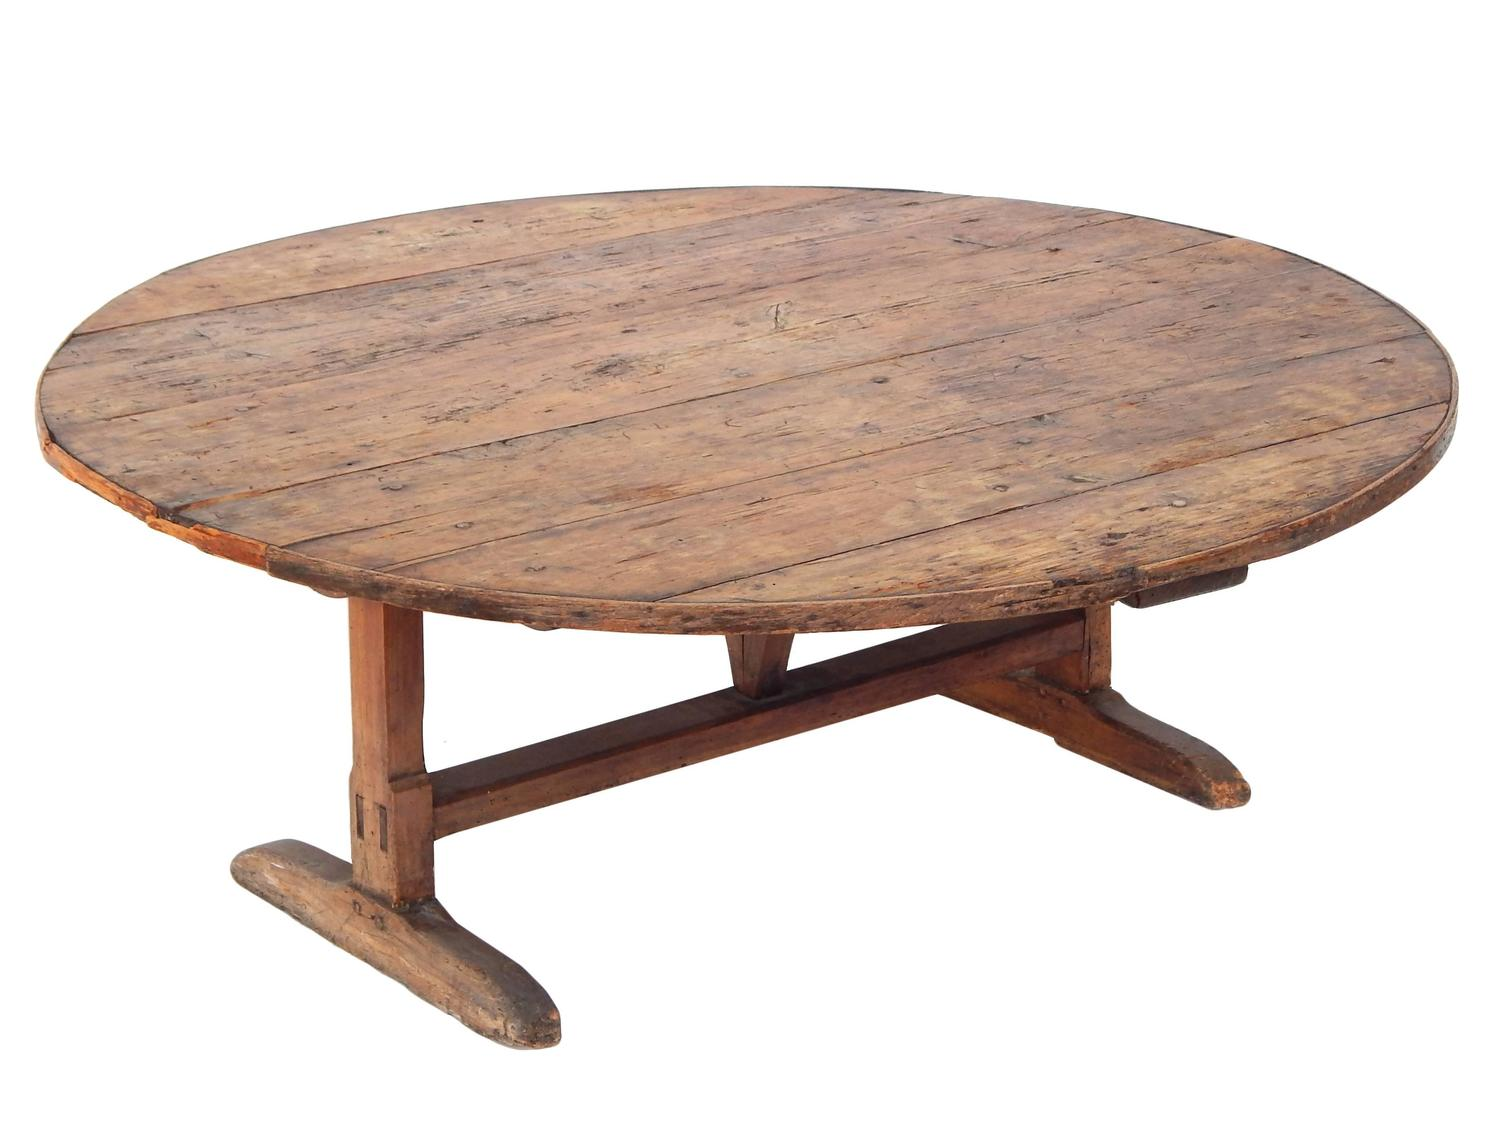 Coffee table height wine tasting table at 1stdibs - How tall is a coffee table ...